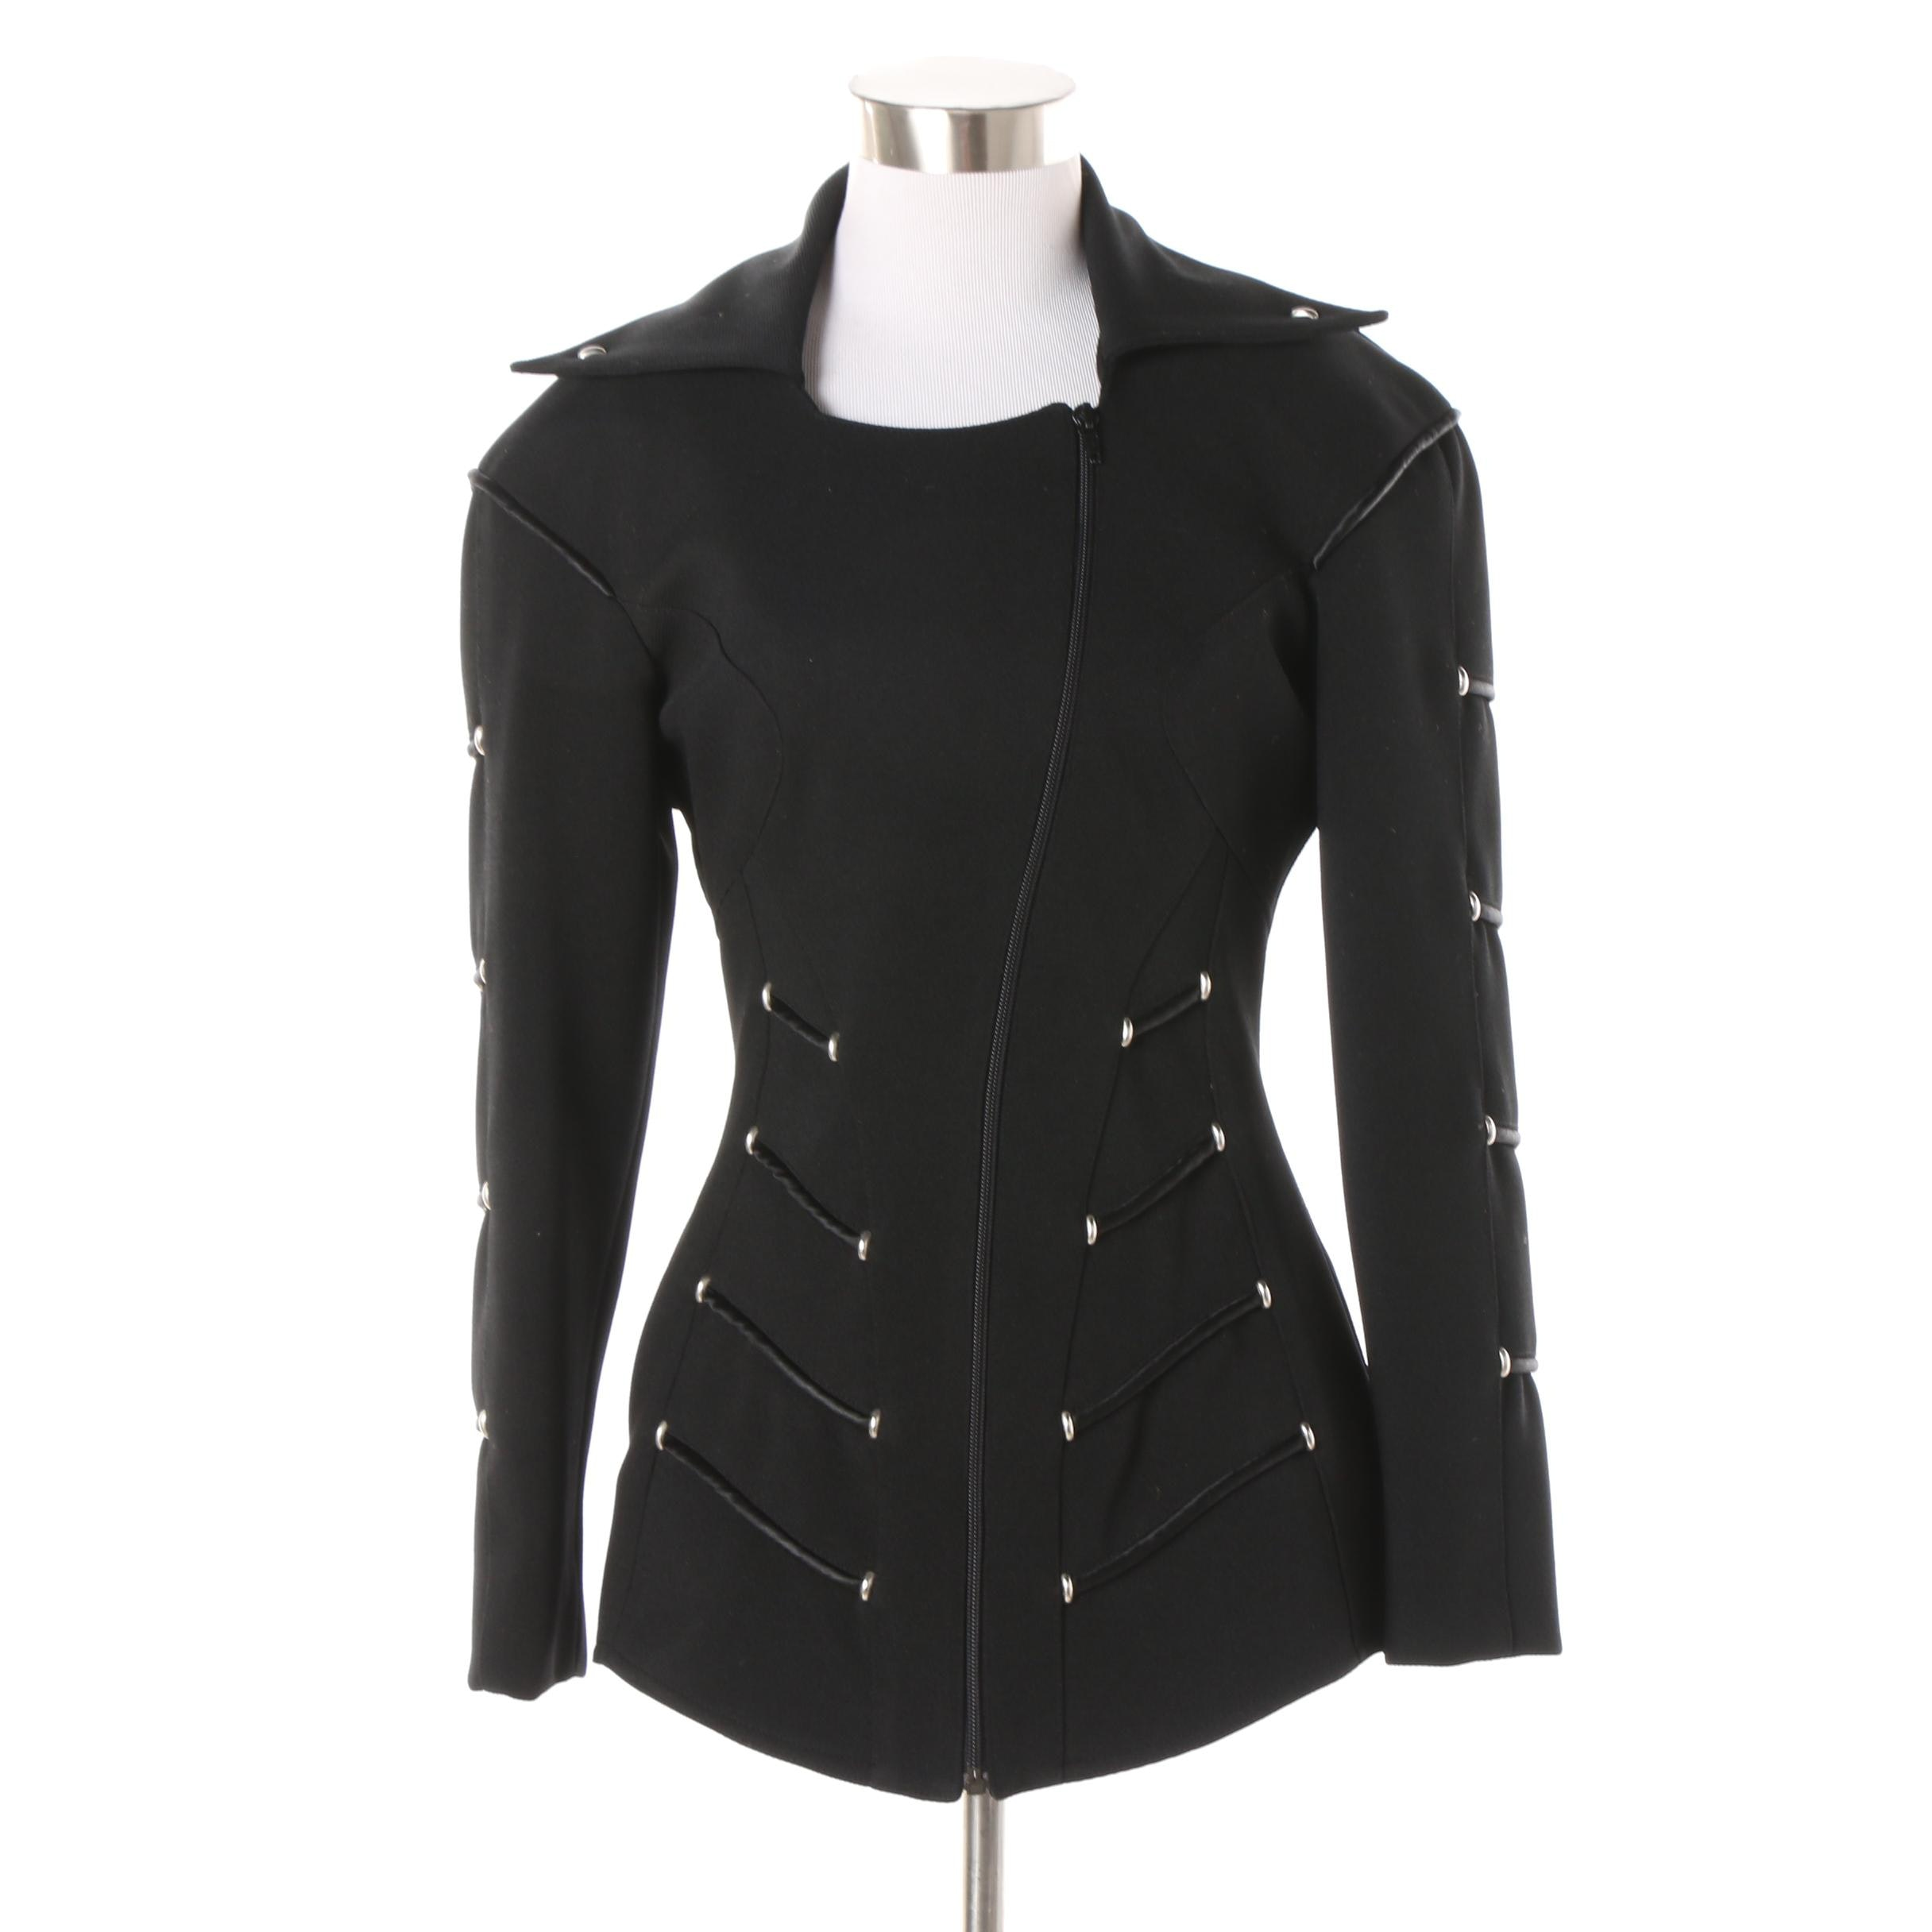 La Milliardaire of Paris Asymmetric Zip Black Jacket